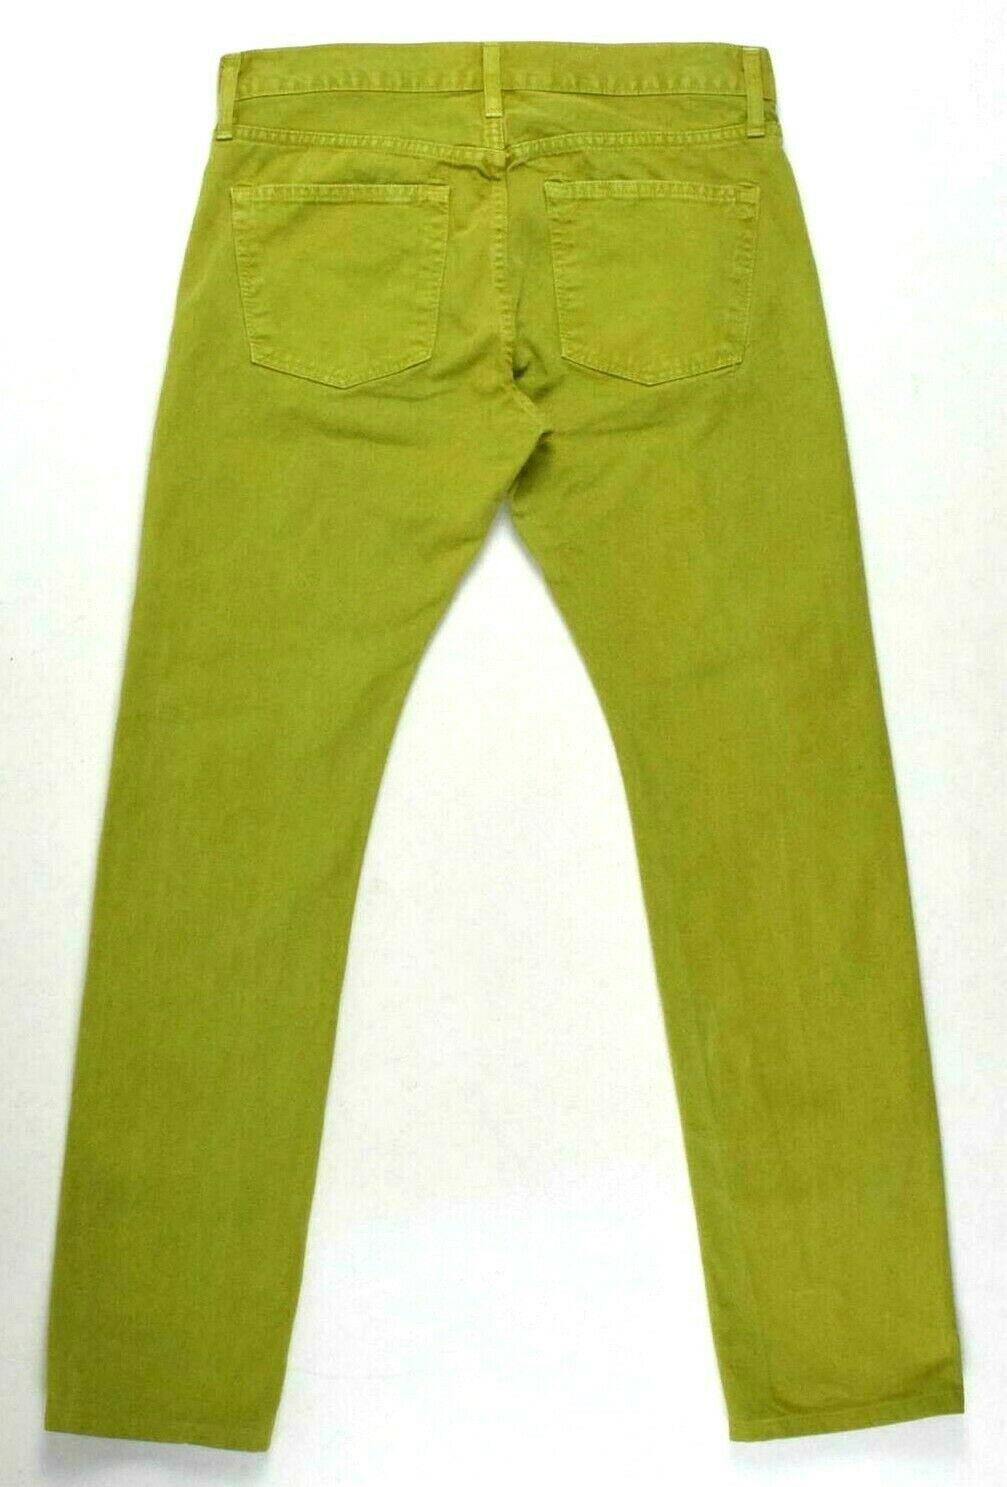 J Brand Green Denim Button Fly Jeans Pants Boot Cut Womens Size 32 x 32.5 image 2